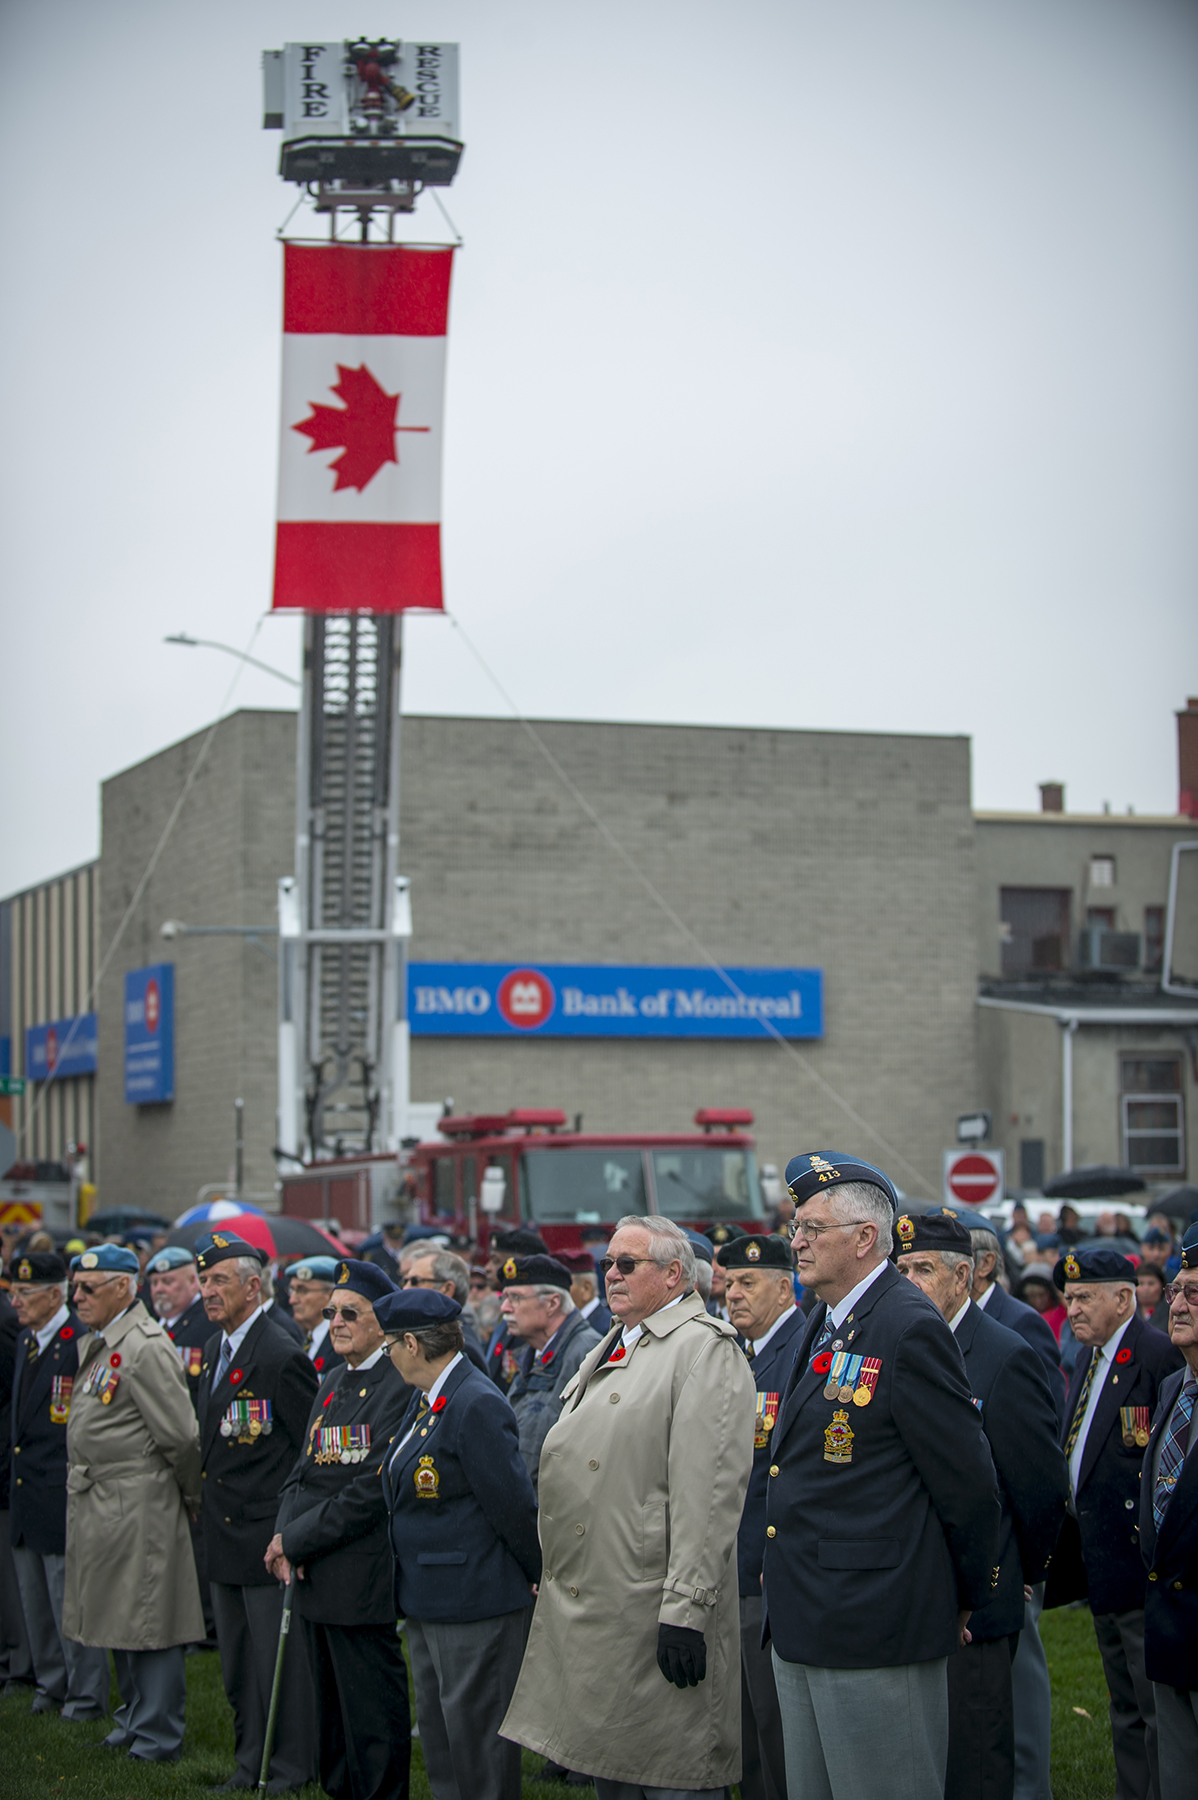 Canadian Armed Forces veterans attend the 2015 Remembrance Day ceremony held November 11, 2015, in Trenton, Ontario. PHOTO: Master Corporal Mathieu St-Amour